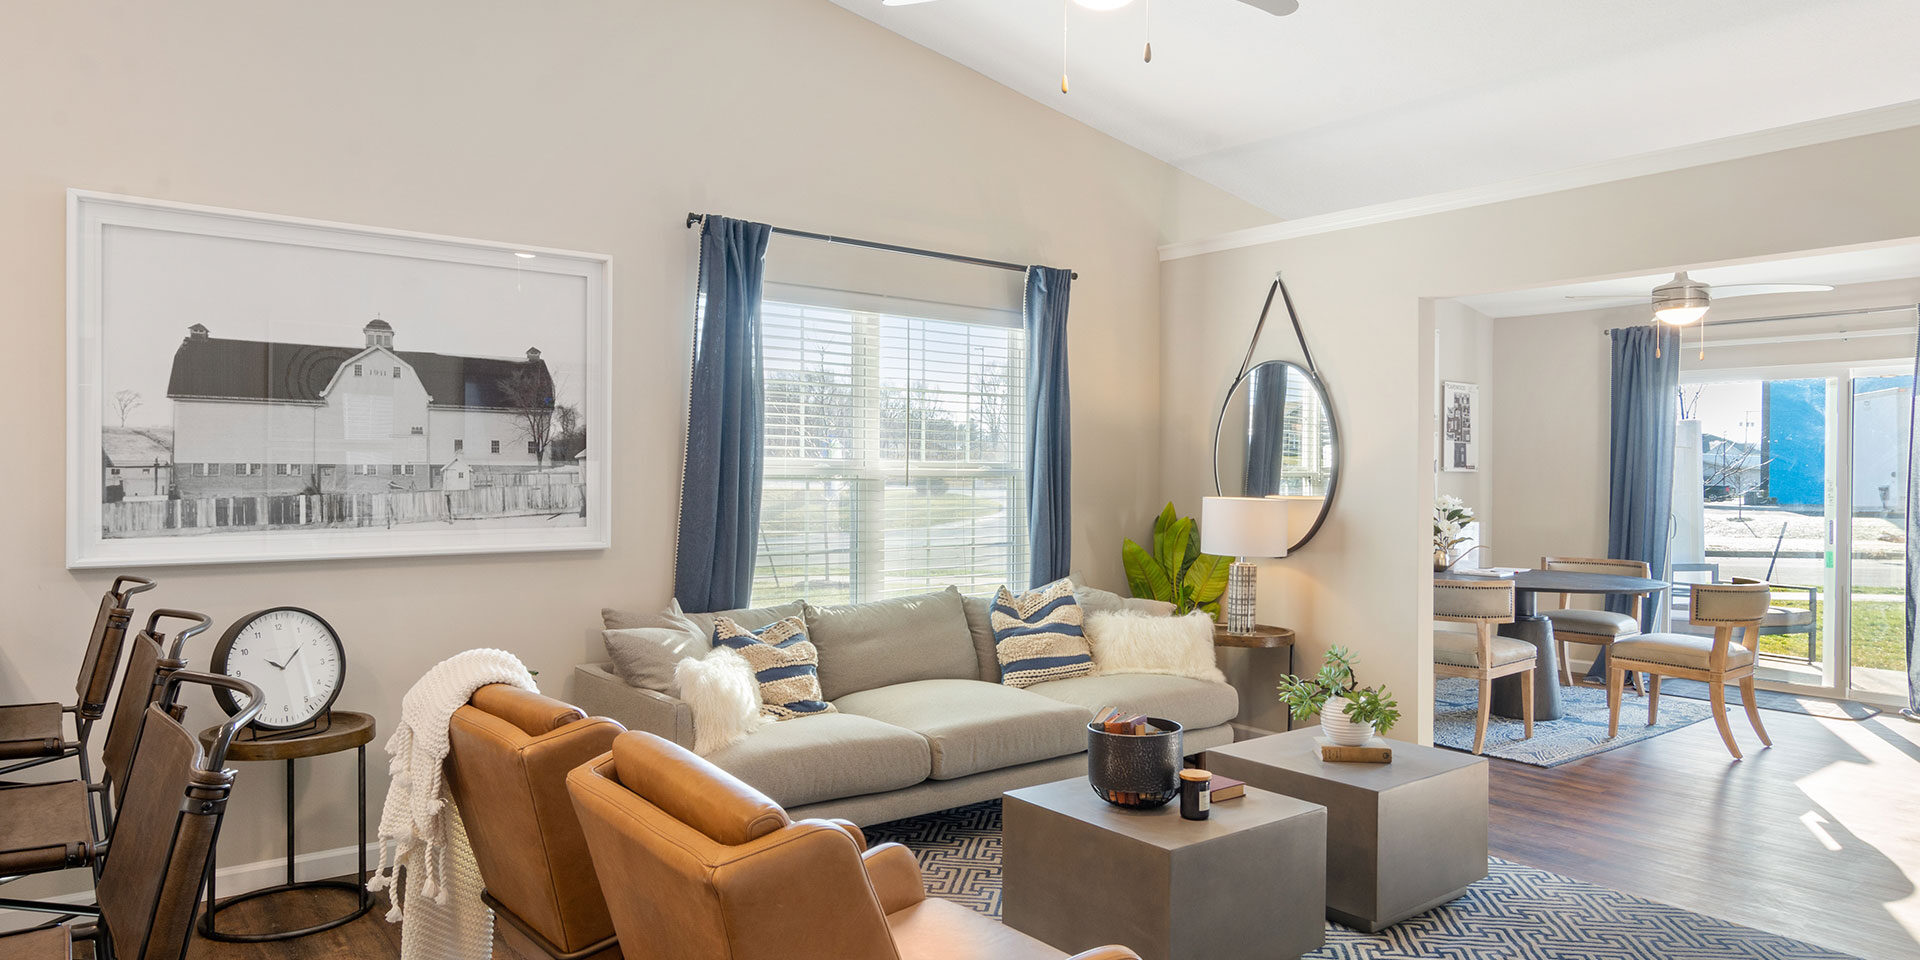 renting furniture for apartment living pros and cons